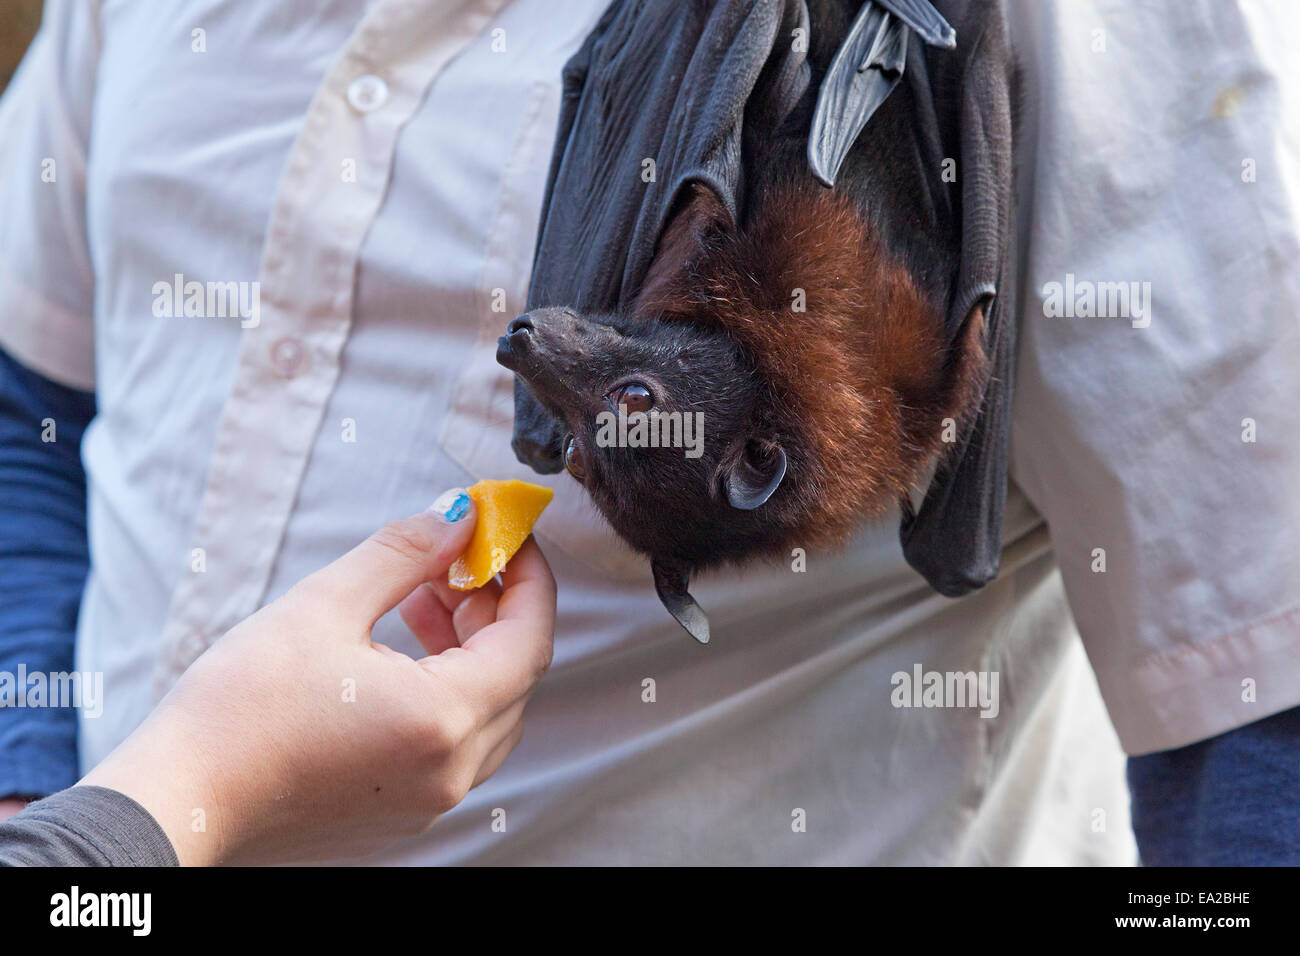 flying fox being fed with a piece of fruit at the bat centre 'Noctalis', Bad Segeberg, Schleswig-Holstein, - Stock Image